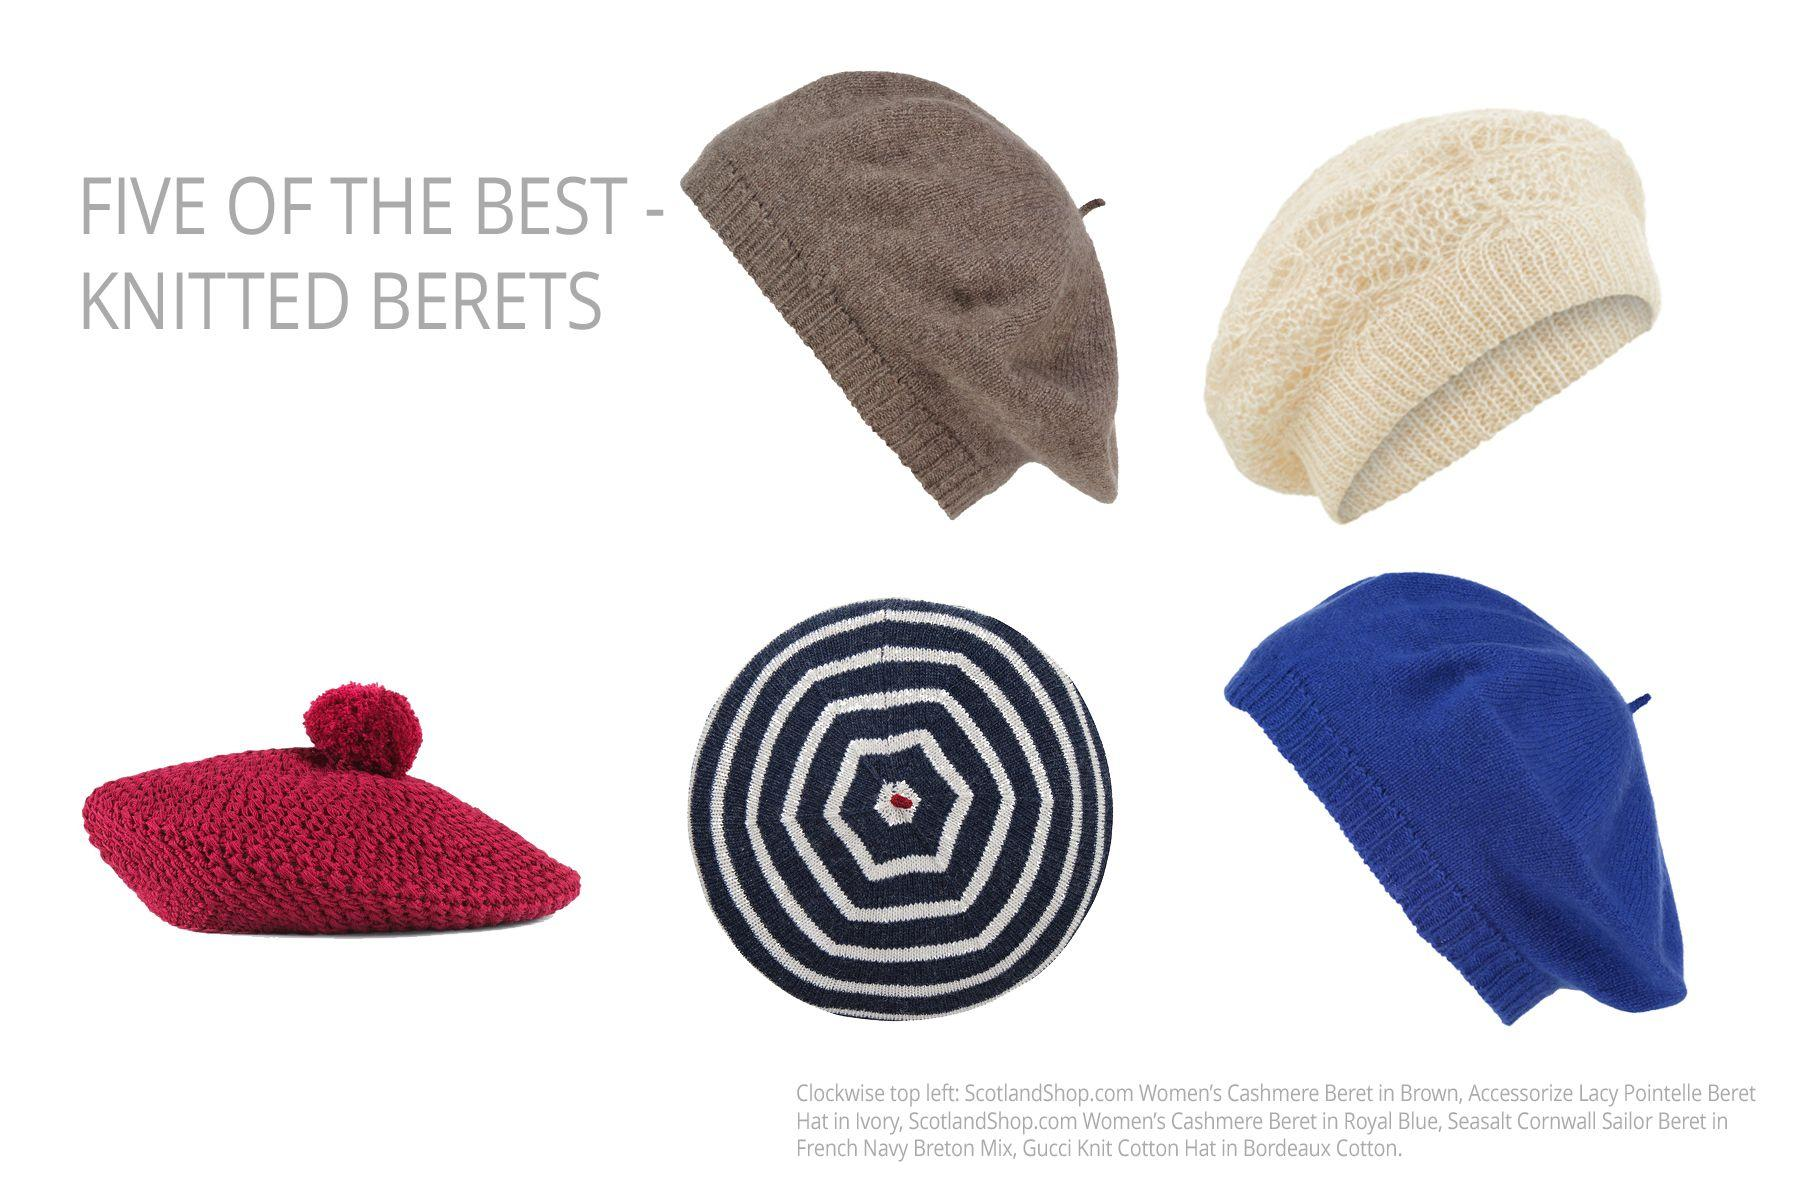 f10a03d78 Five of the Best Knitted Berets | ScotlandShop